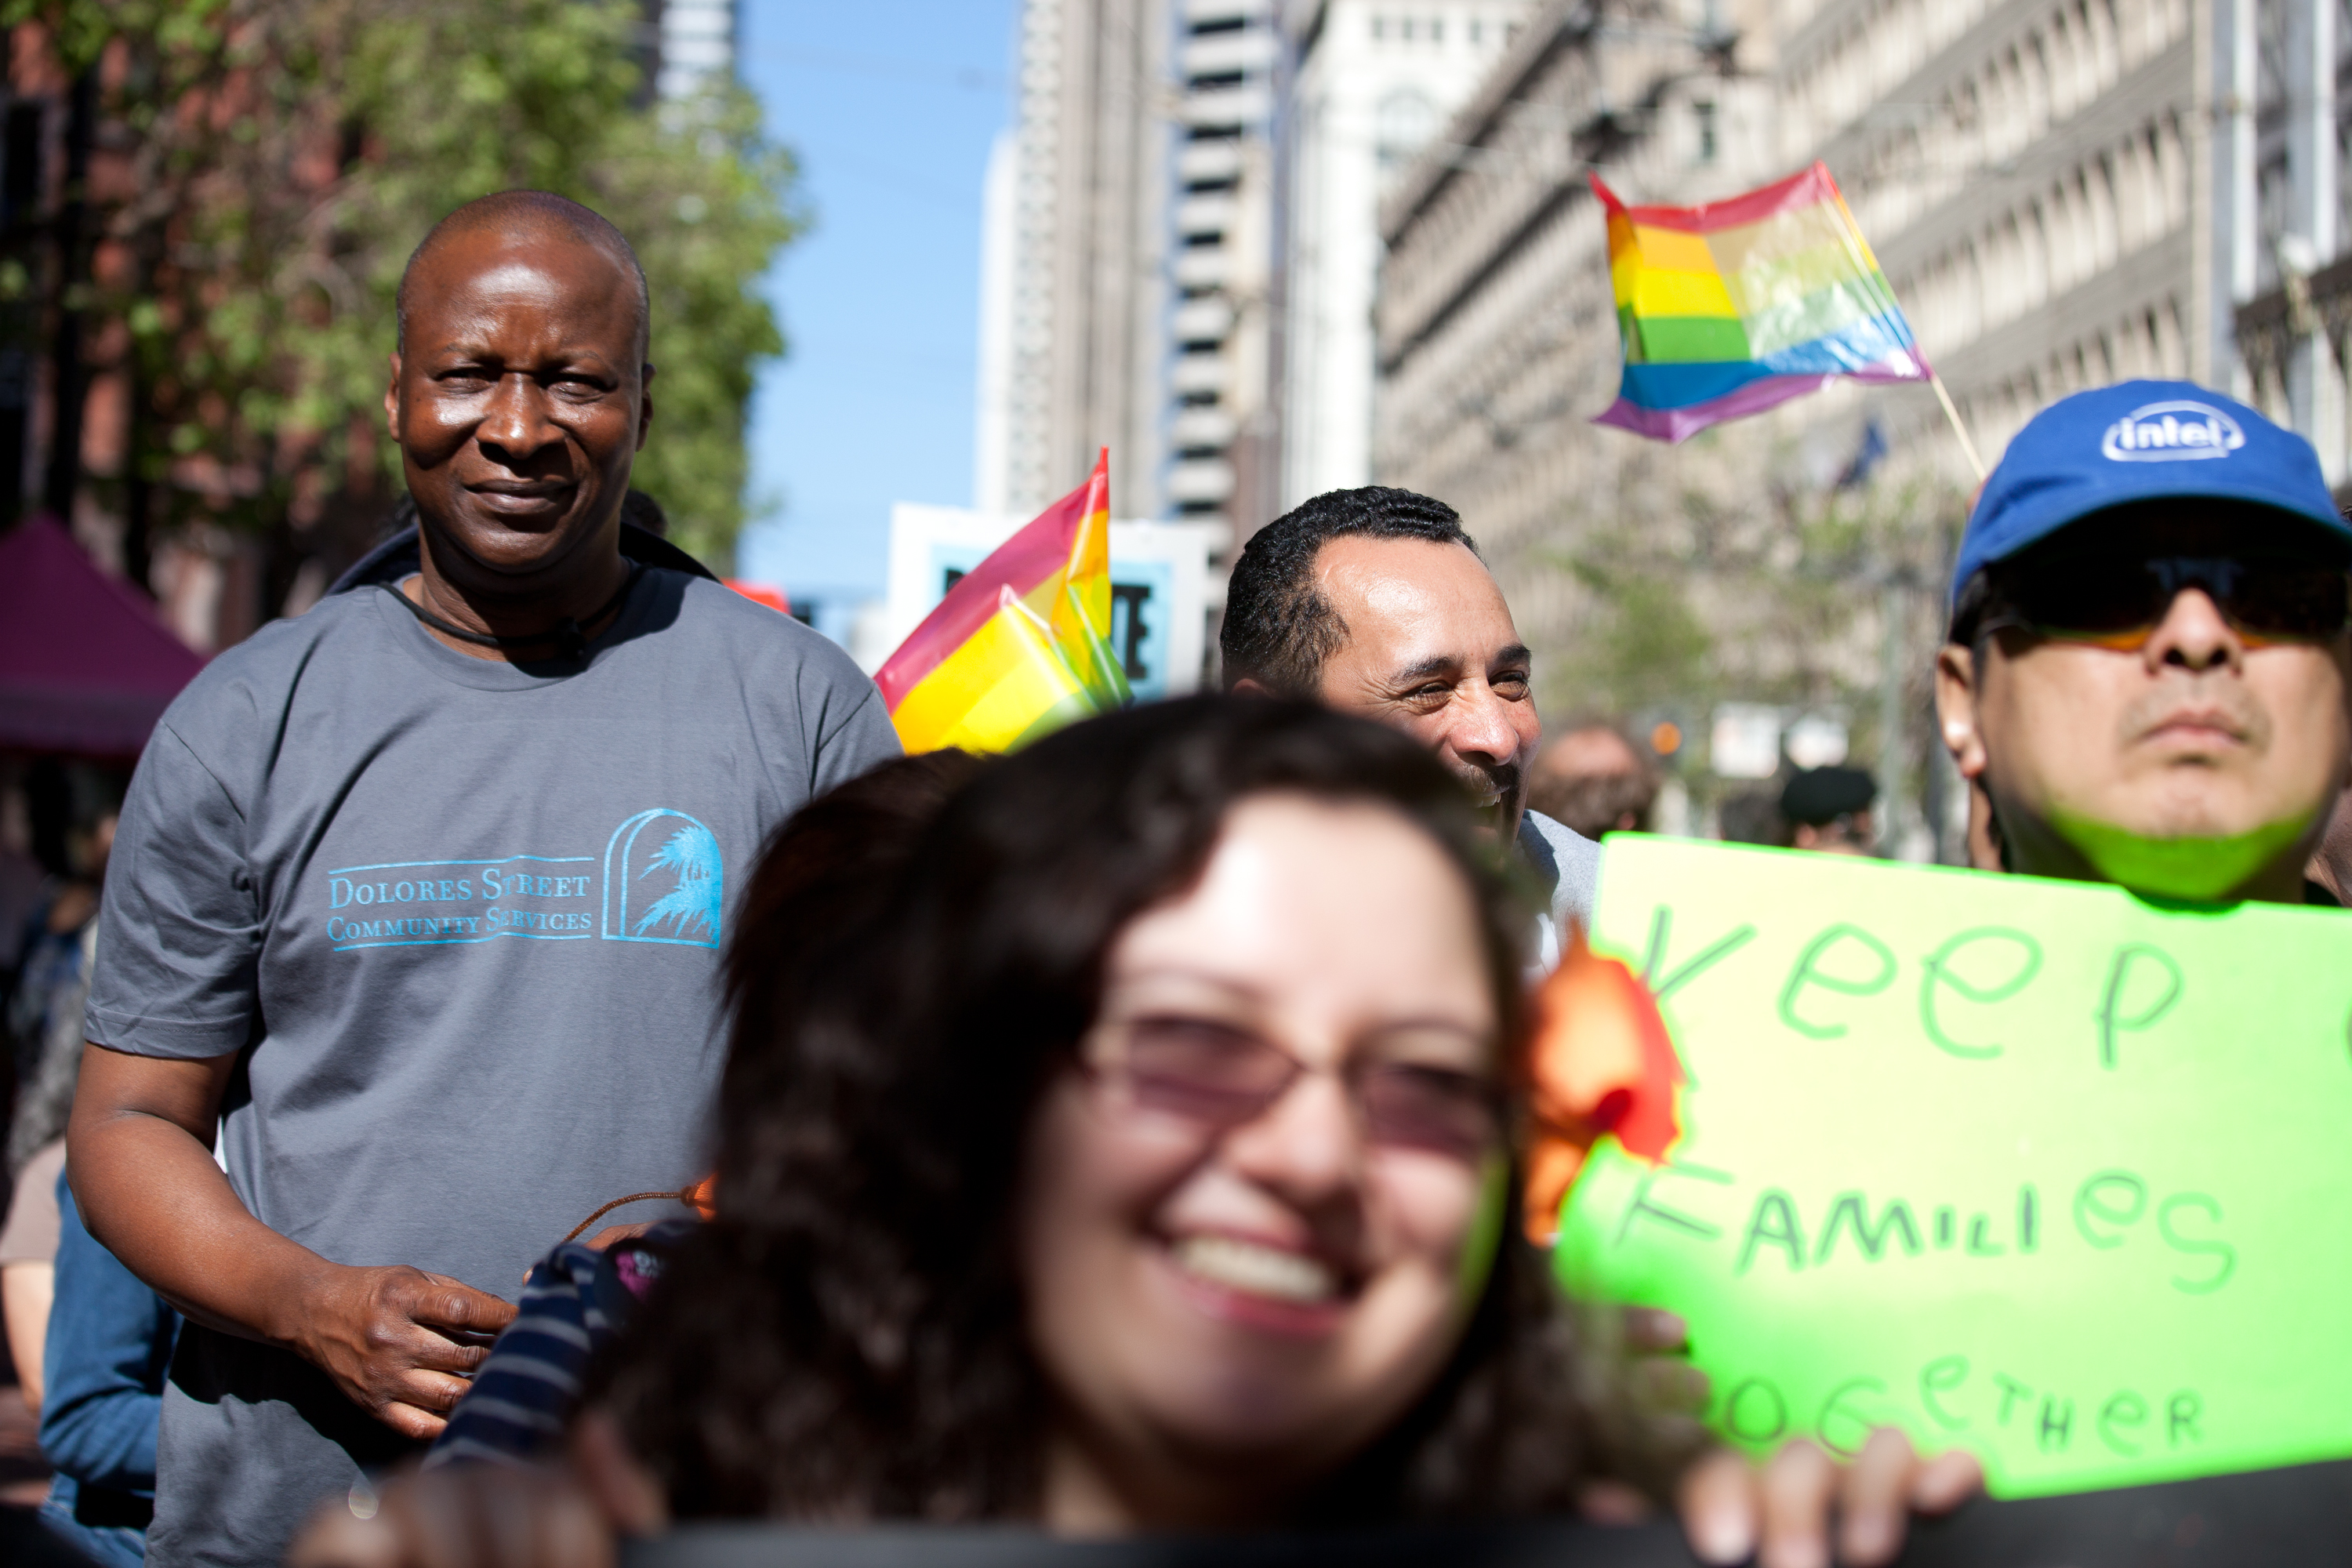 Adoubou Traore (left) marches with about 1,000 people in San Francisco on a national day of action, to support a comprehensive immigration reform that includes a path to citizenship. (Deborah Svoboda/KQED)